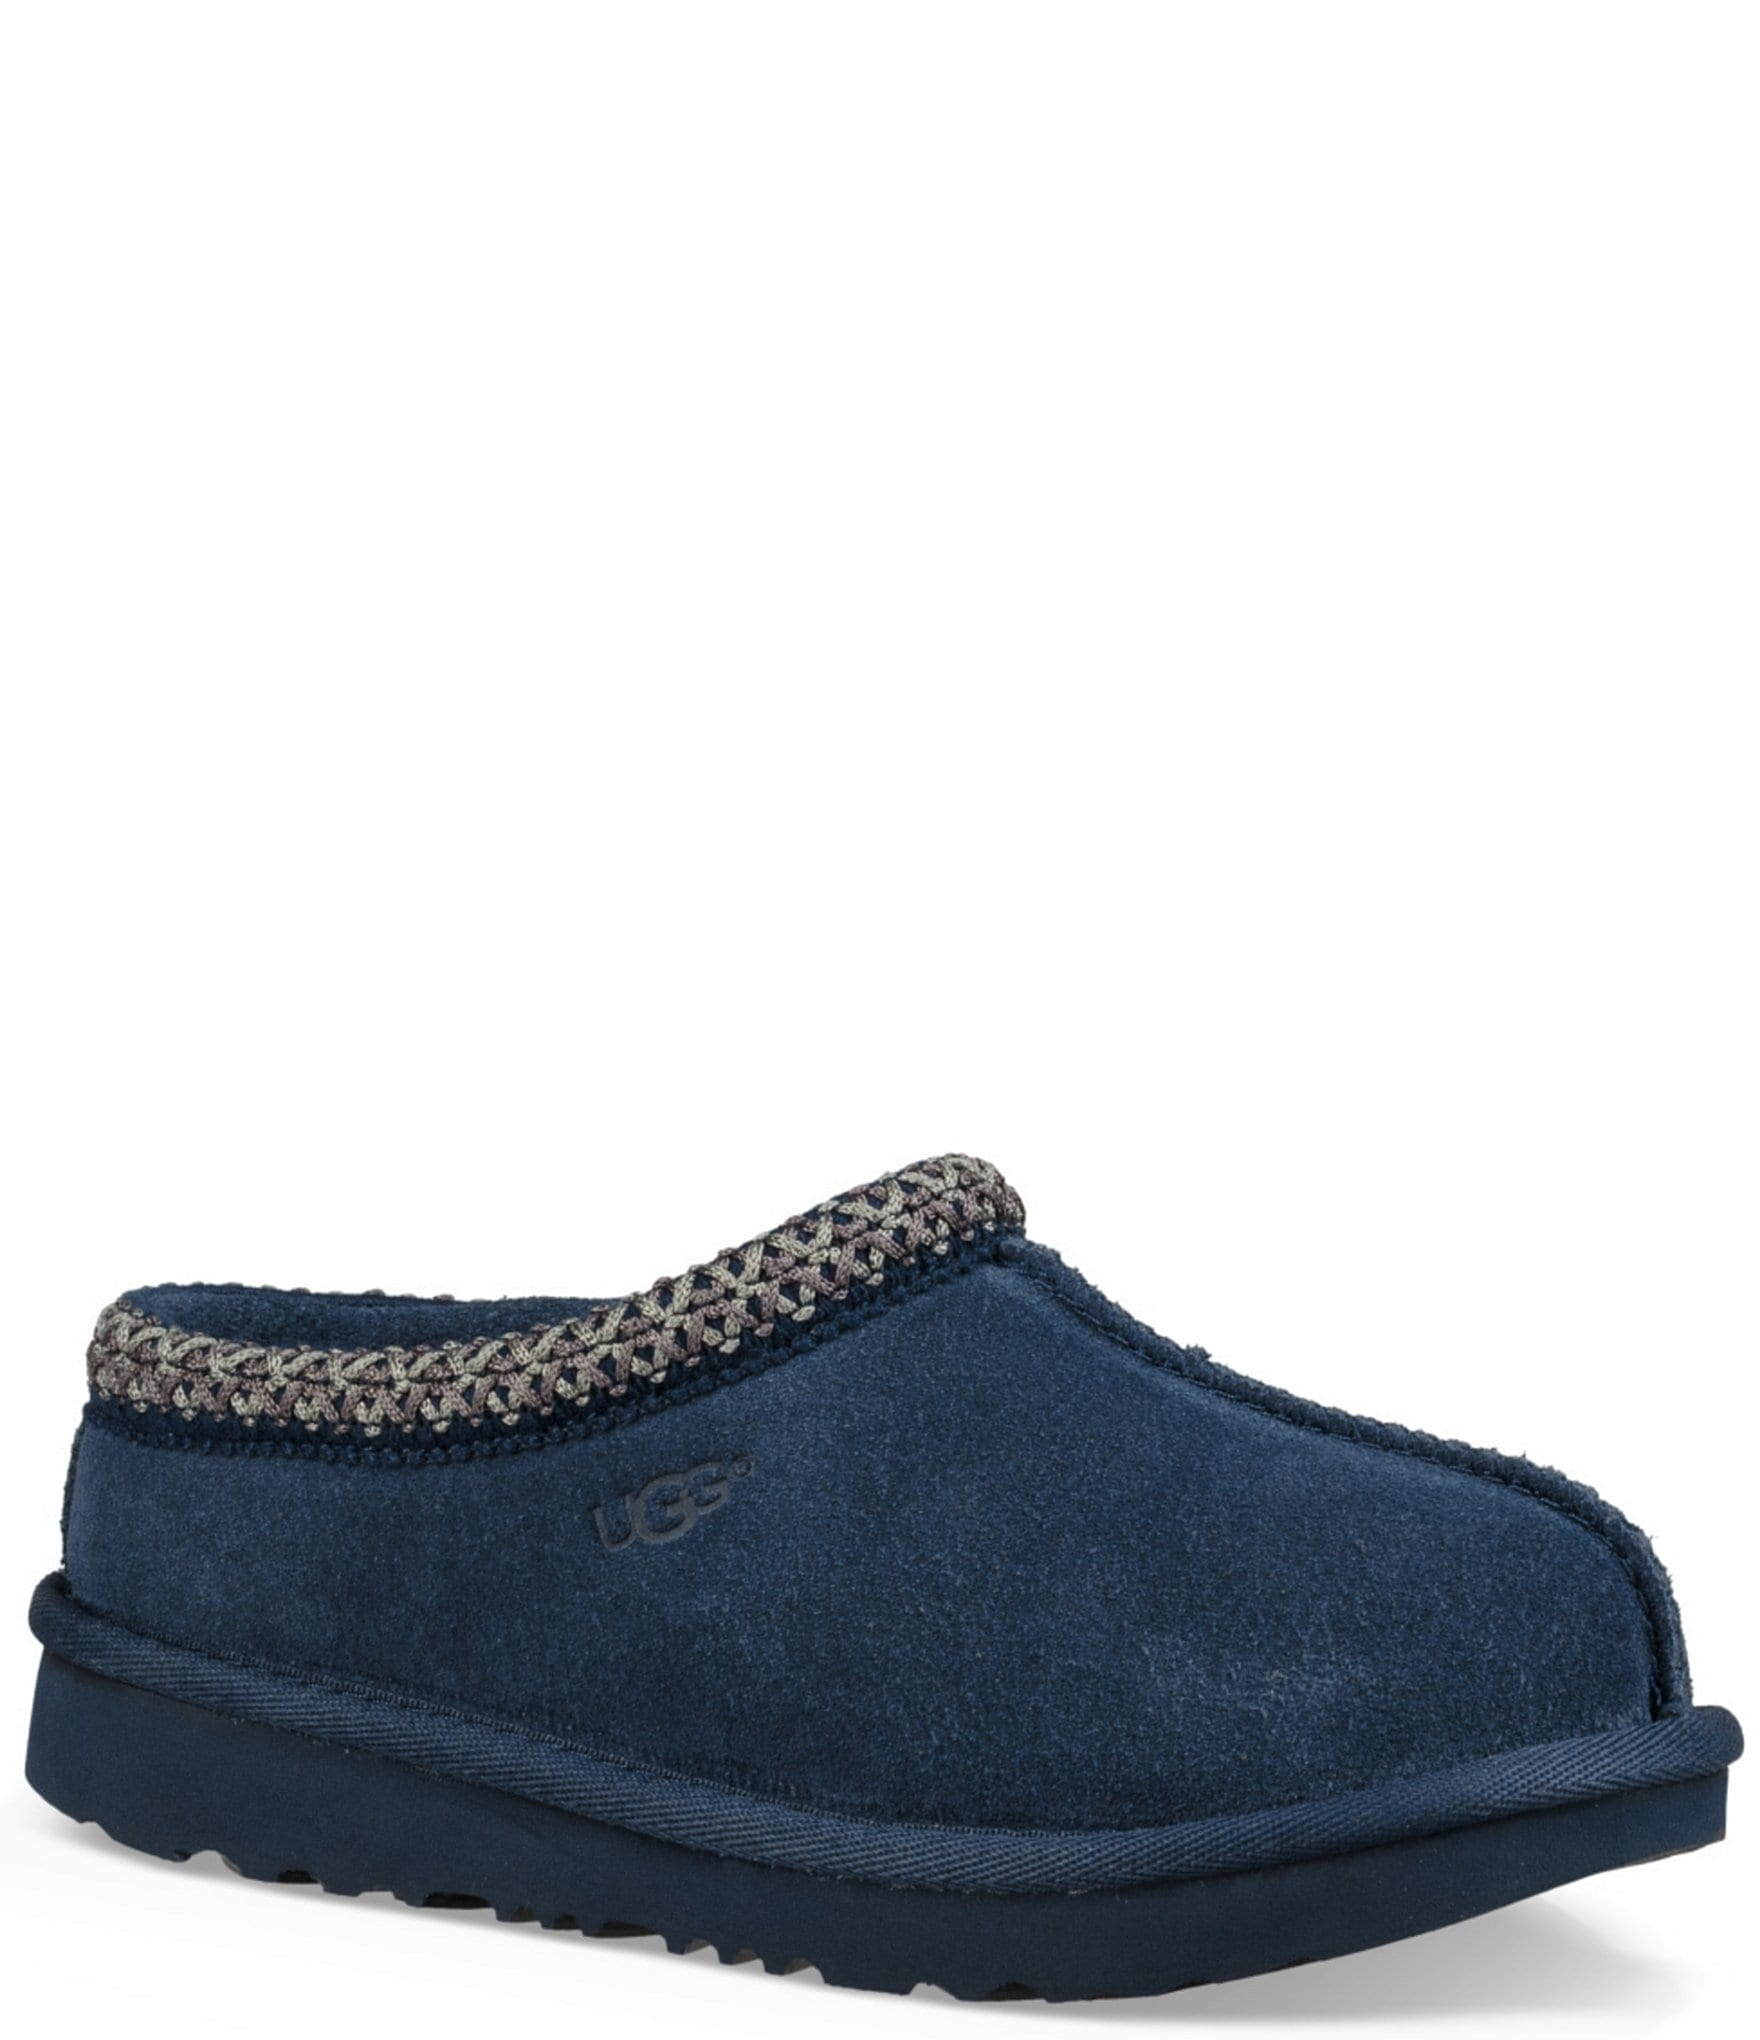 29a4d6833f ugg slippers  Shoes for Women